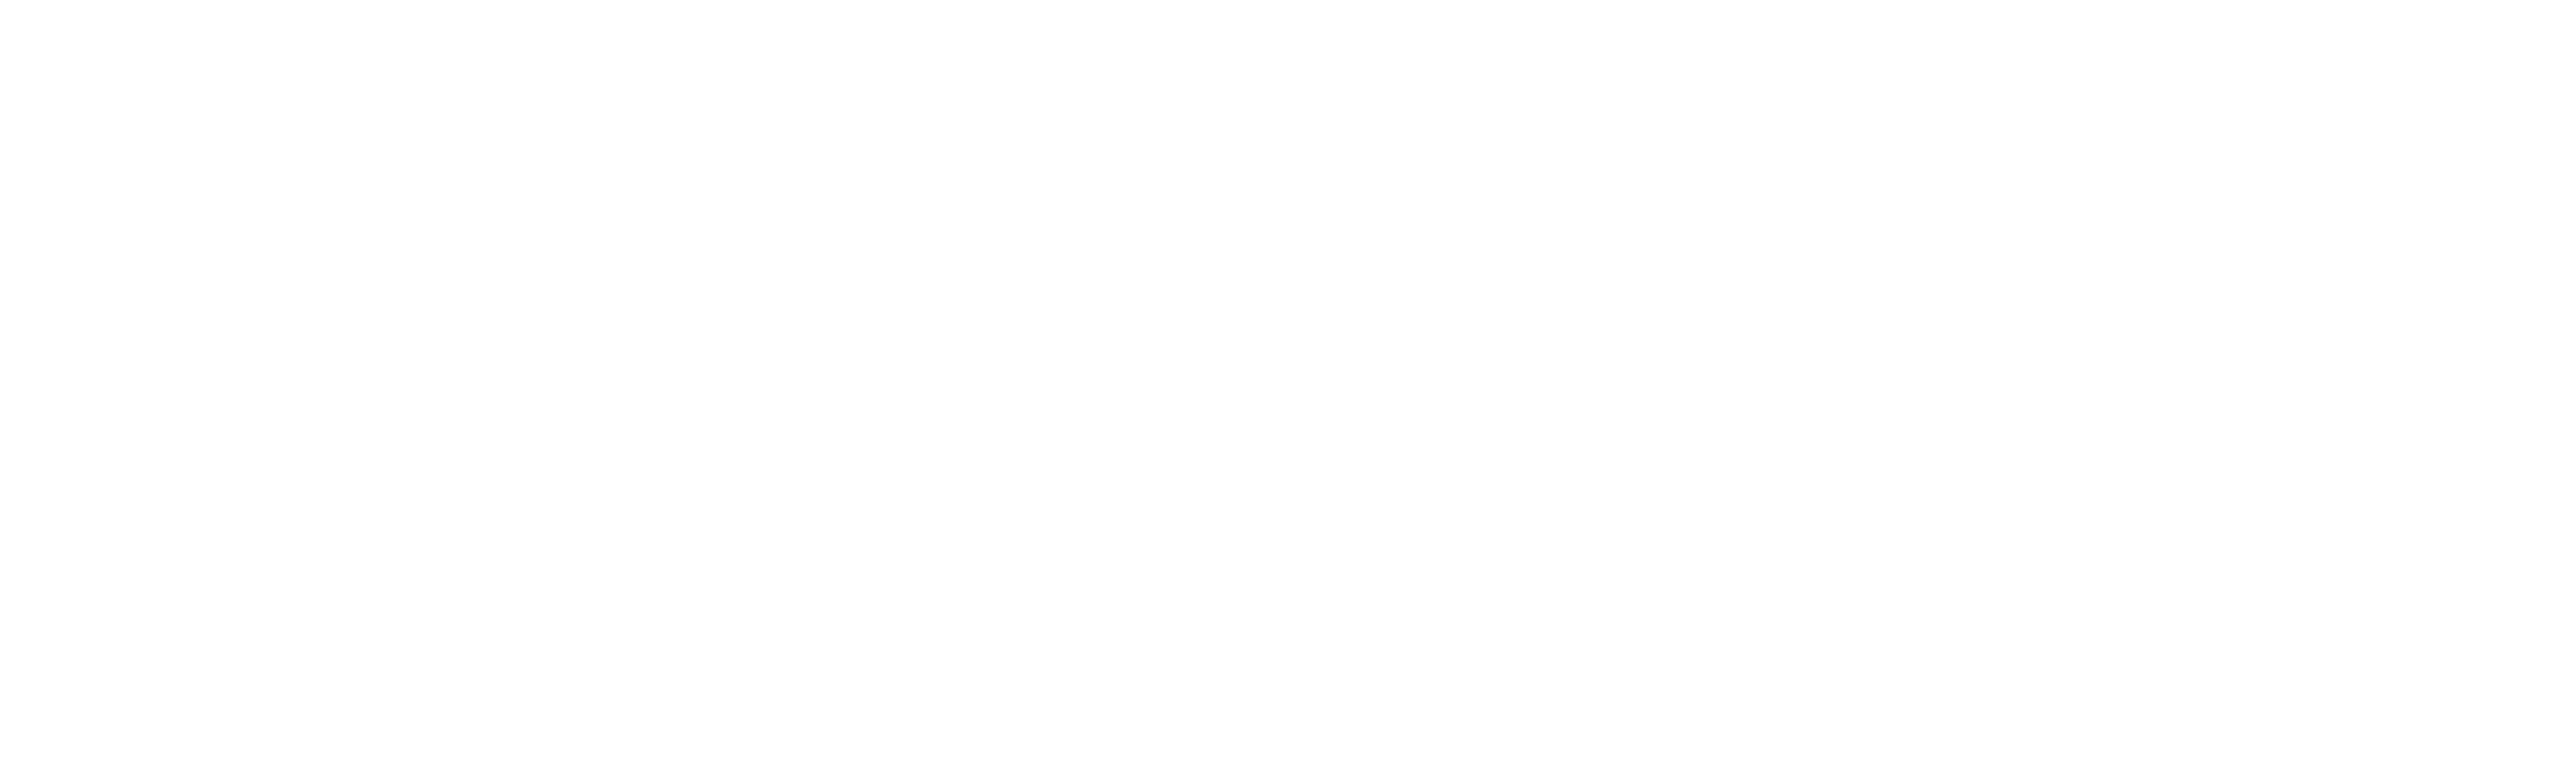 Faceanyplace